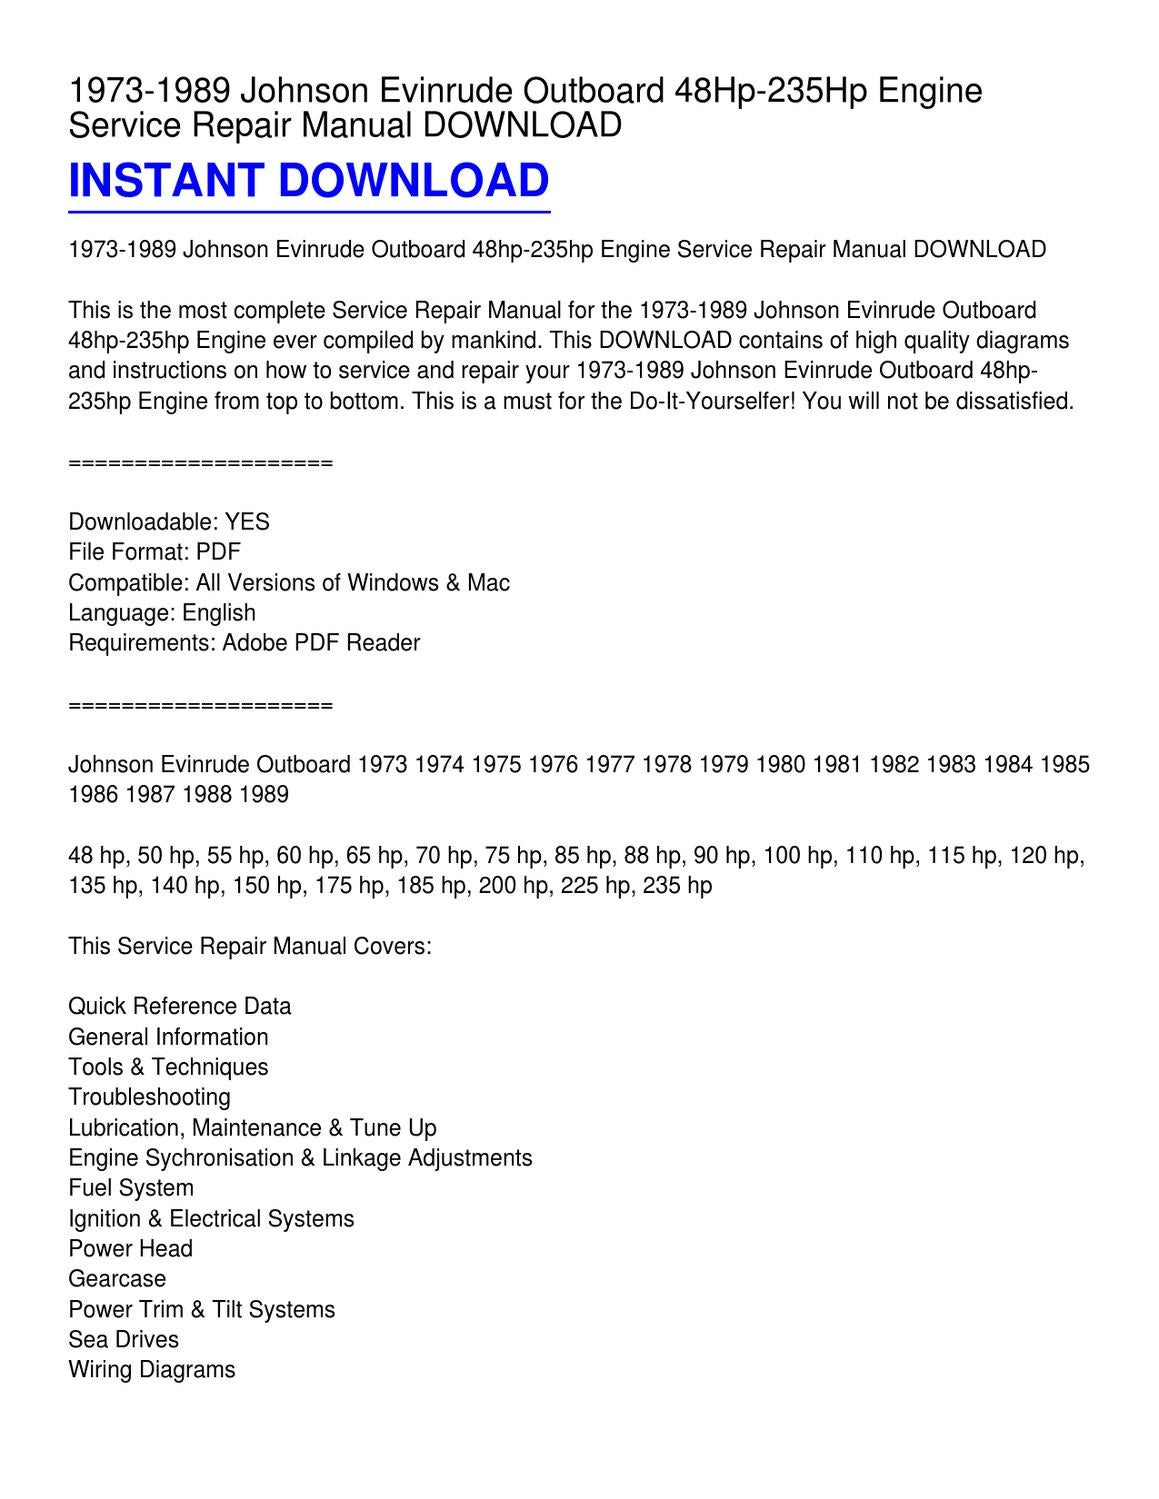 hight resolution of 1973 1989 johnson evinrude outboard 48hp 235hp engine service repair manual download